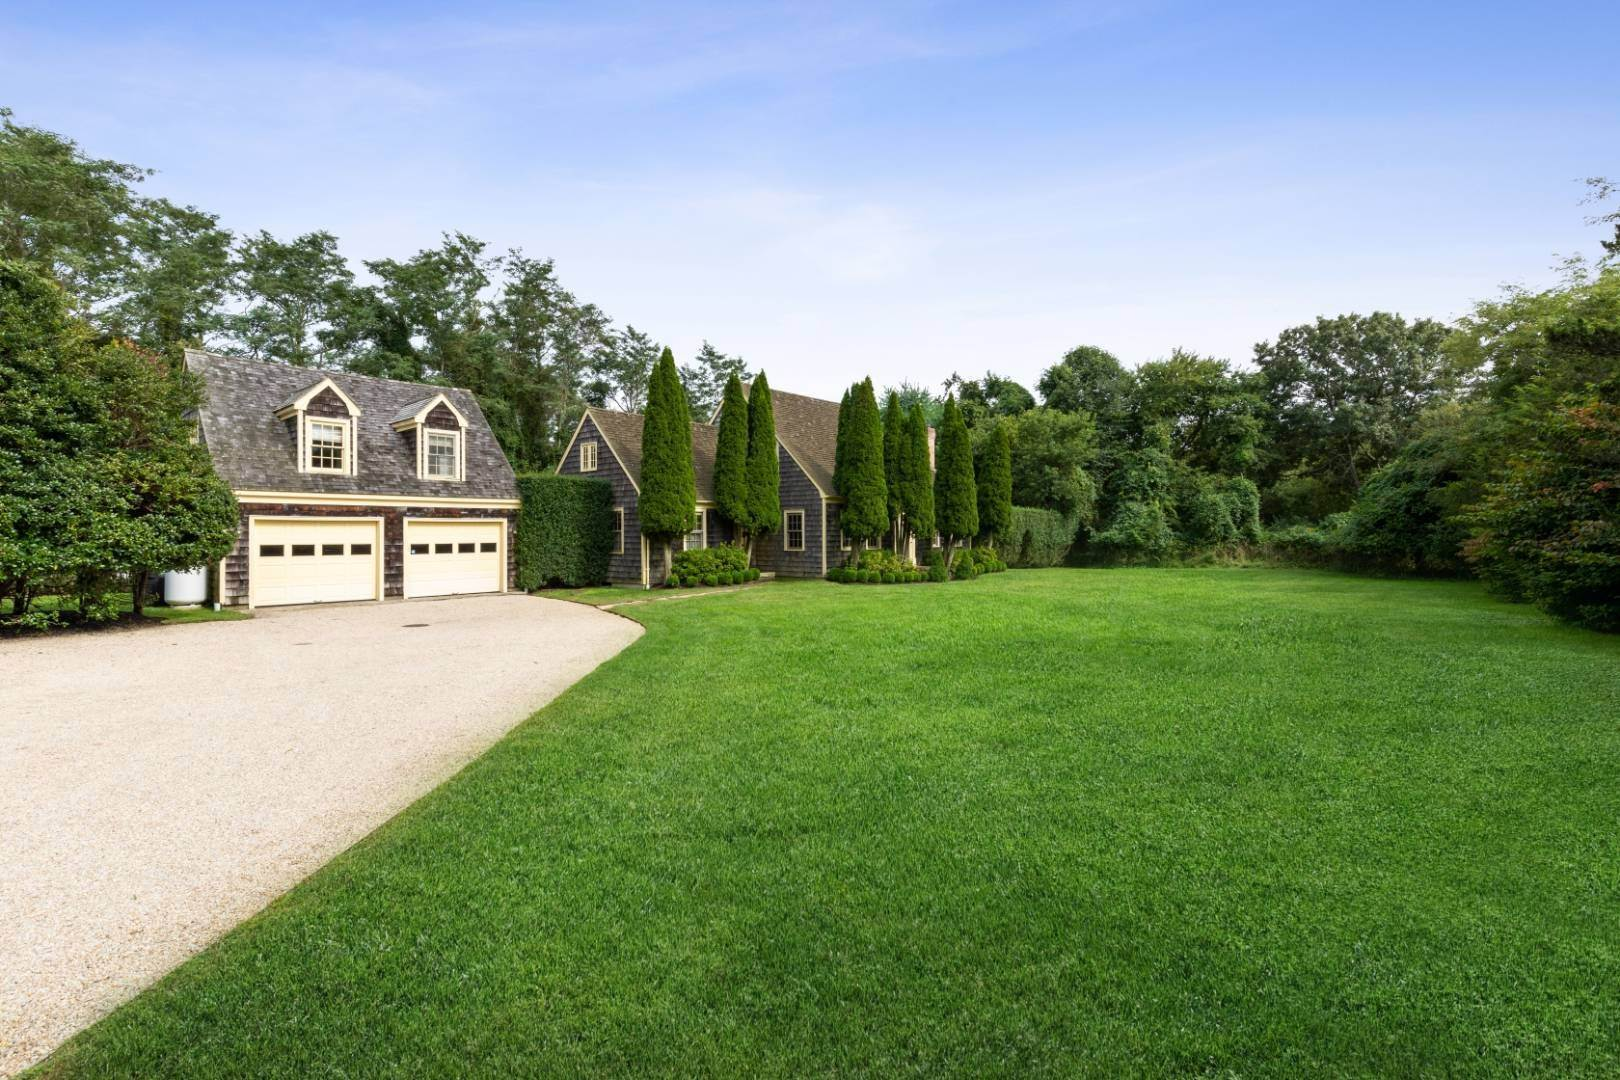 Single Family Home at Lots Of Room To Roam - Bridgehampton North Bridgehampton, NY 11932